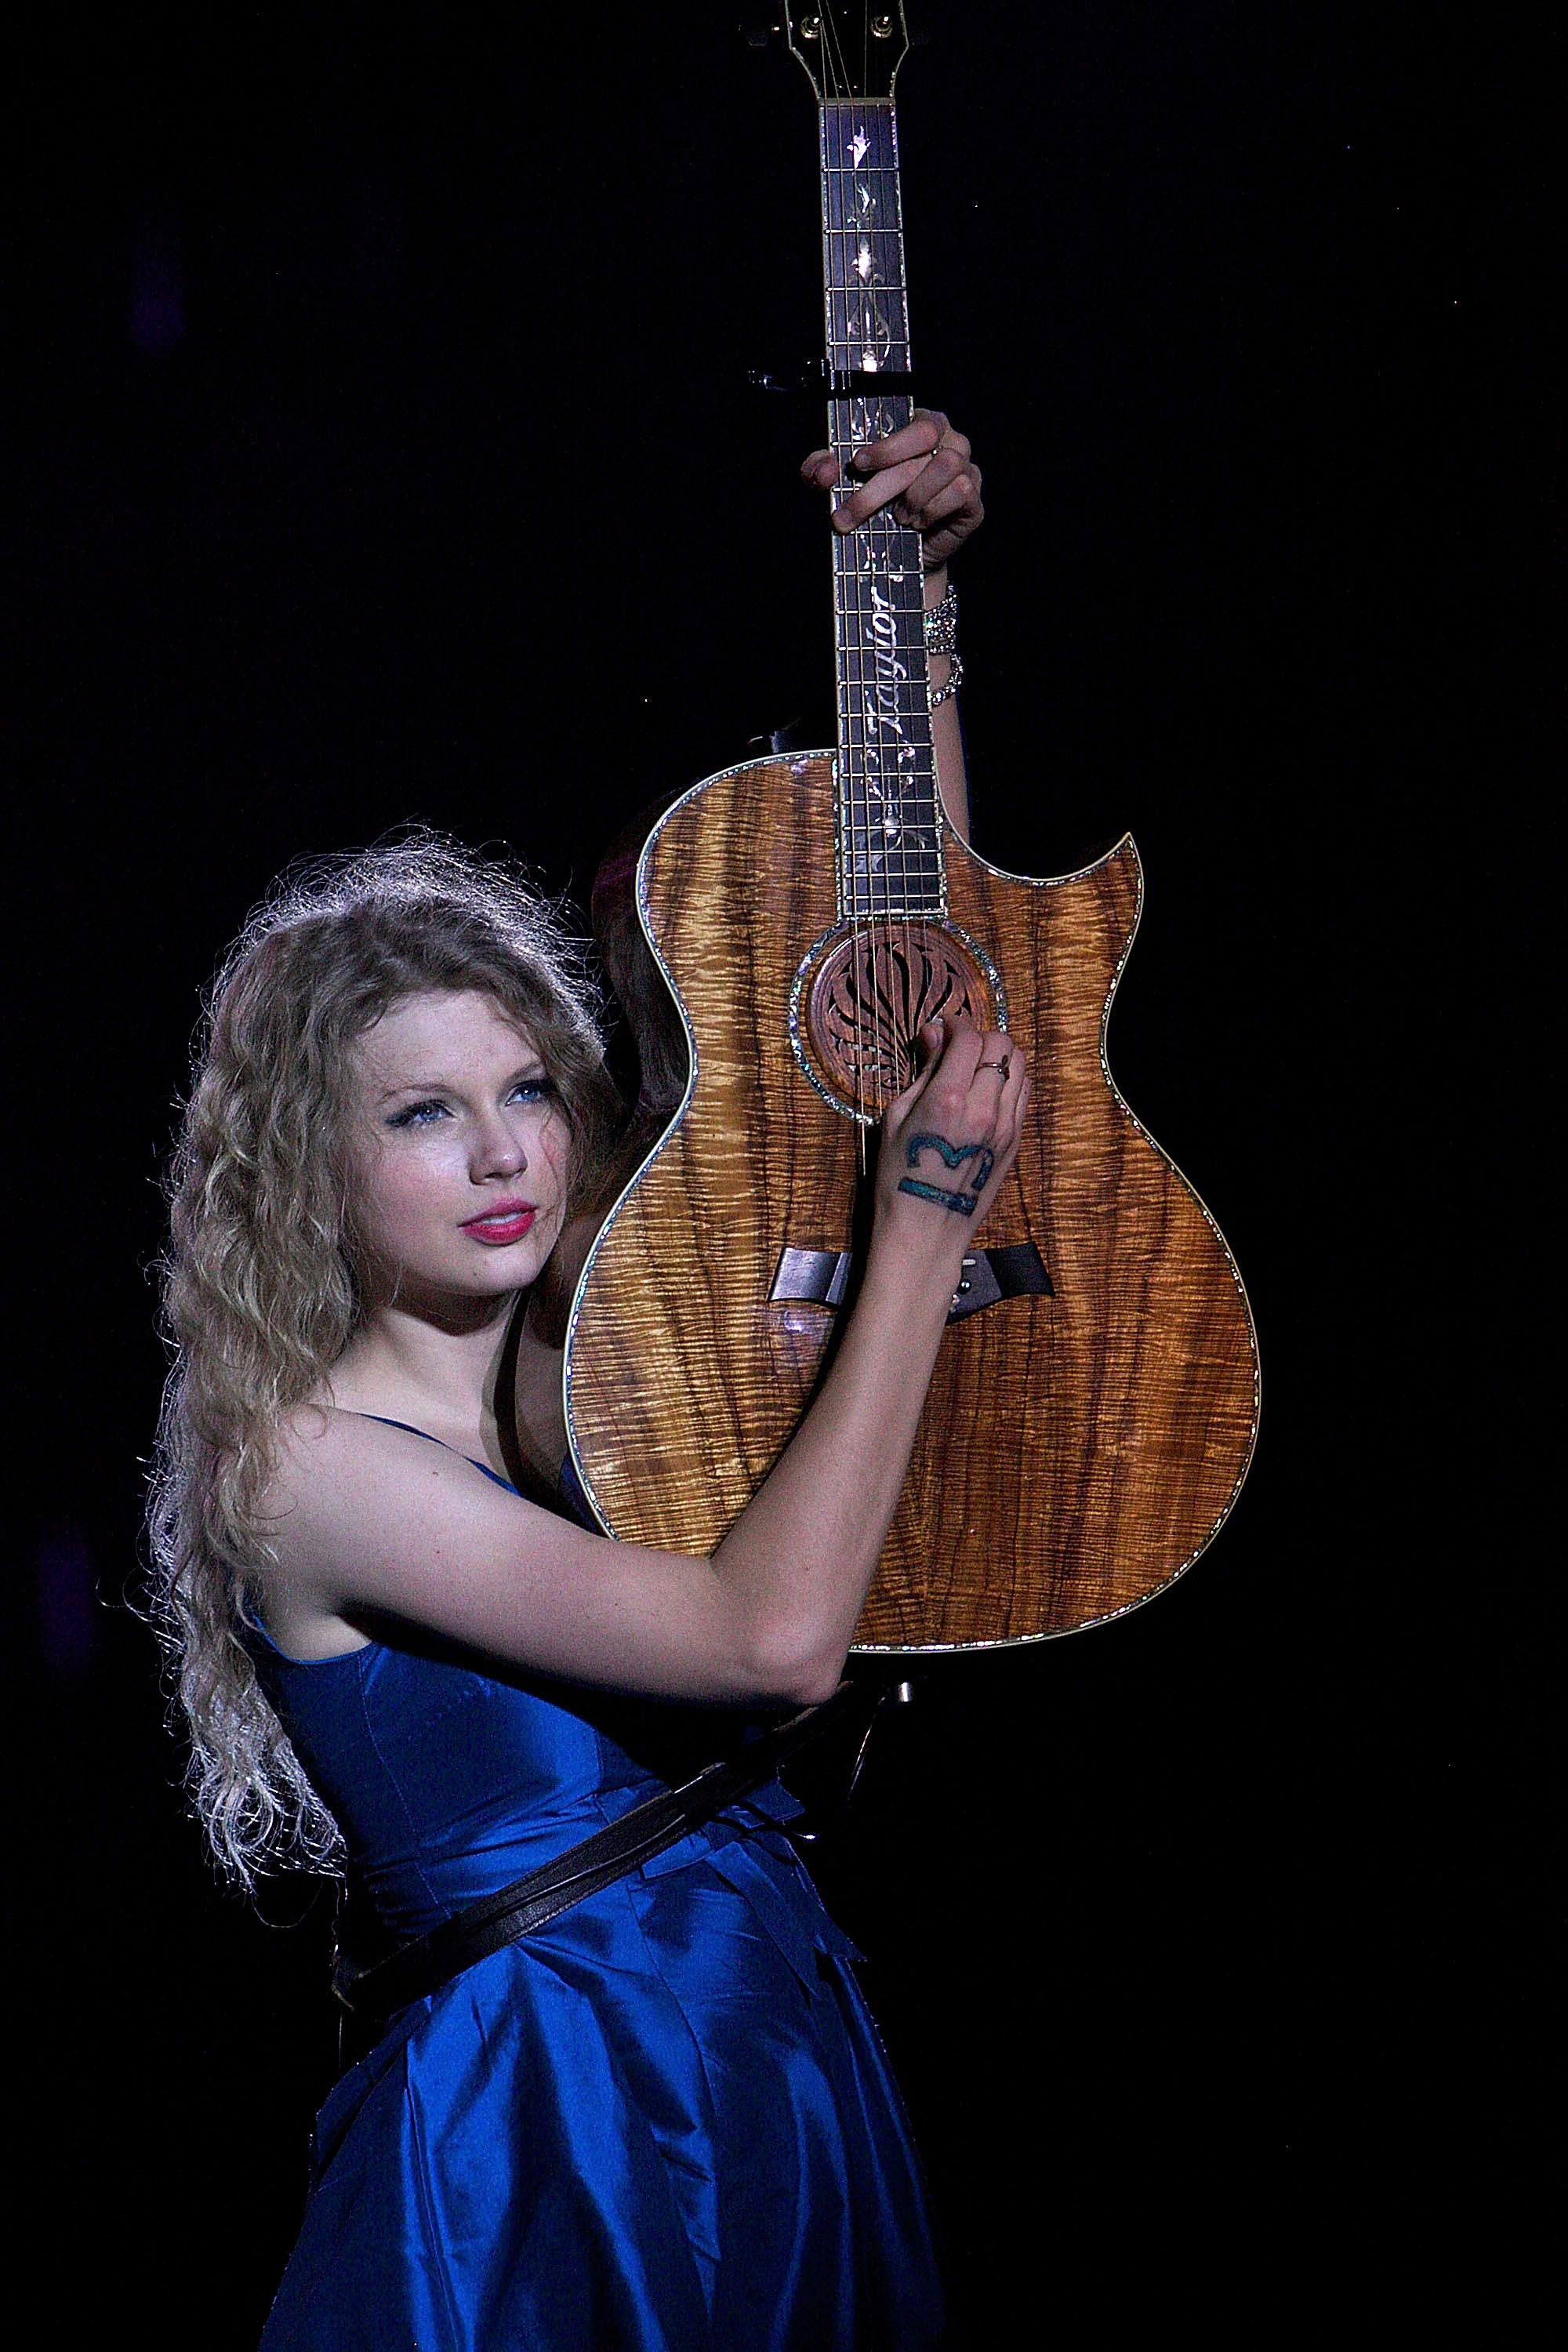 32682_Taylor_swift_performs_her_Fearless_Tour_at_Tiger_Stadium_039_122_429lo.jpg